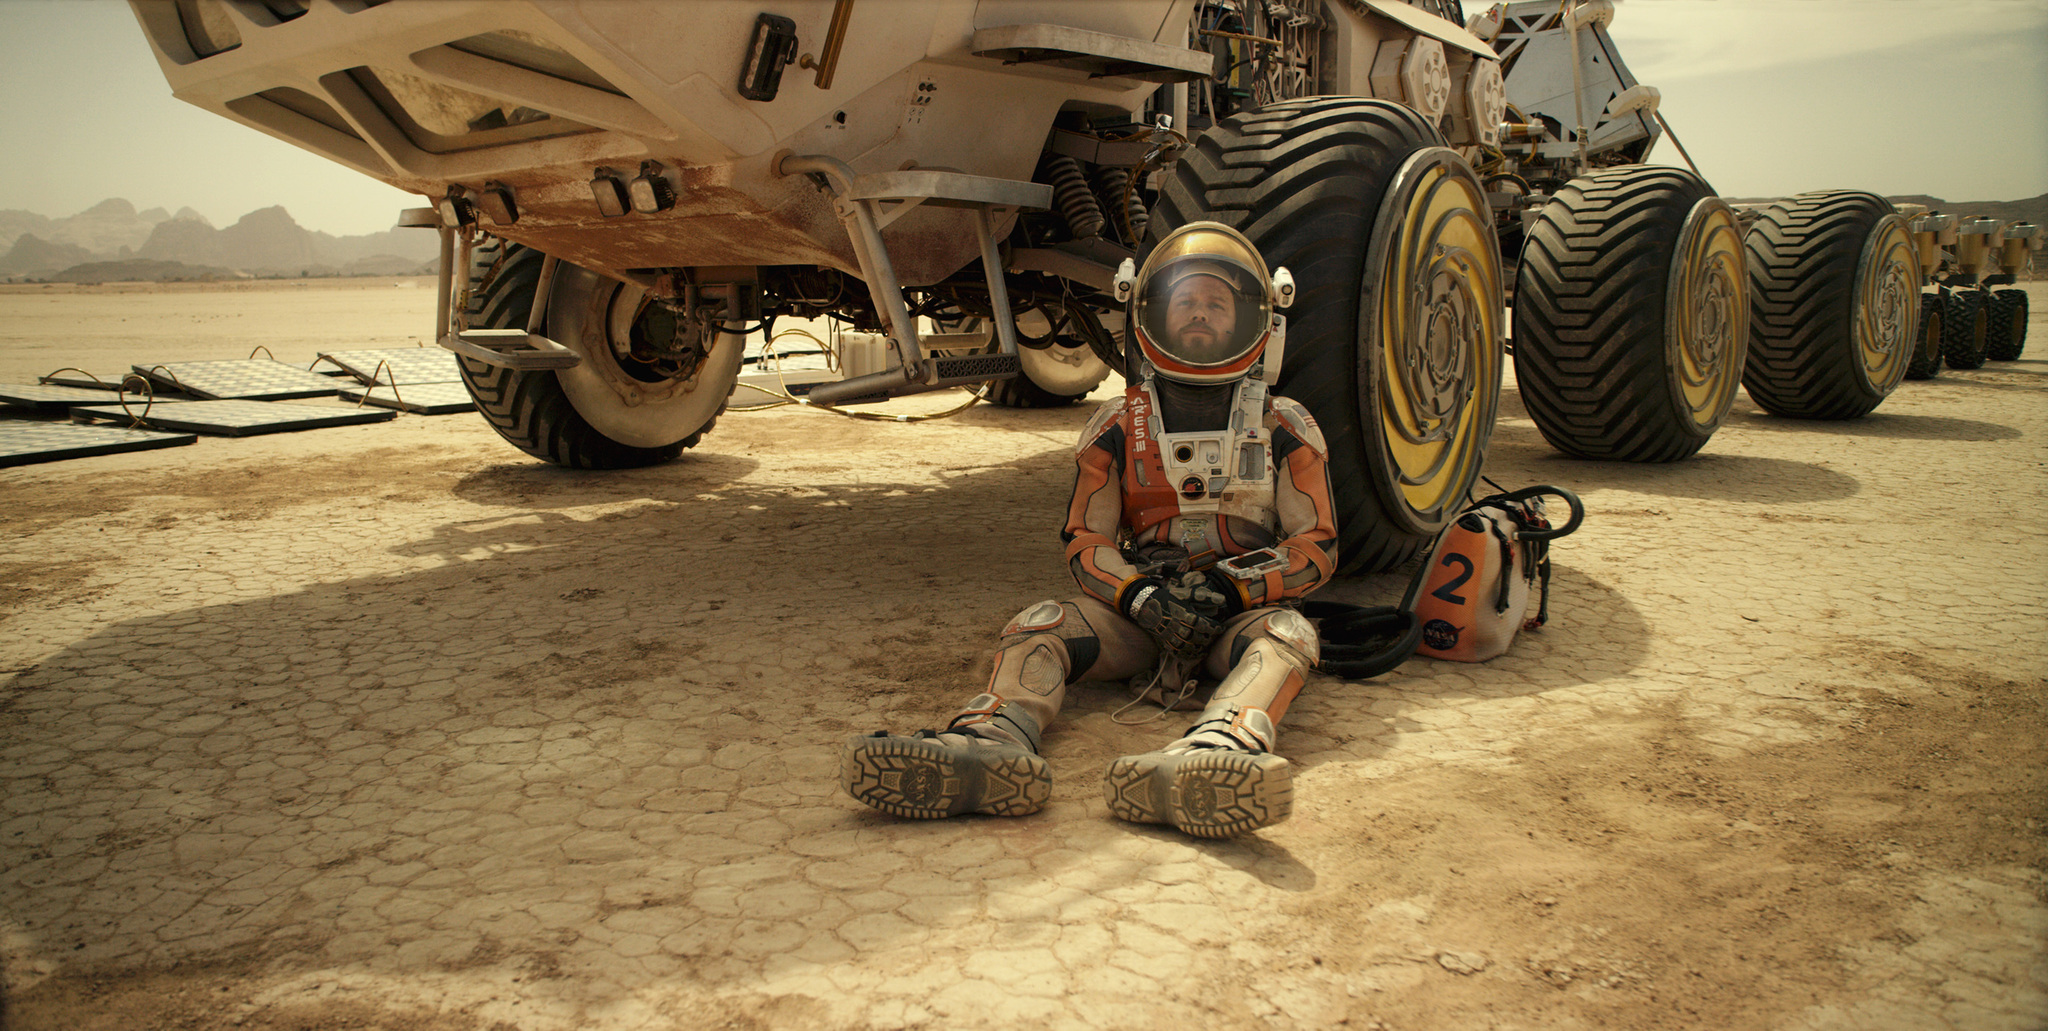 Image result for the martian stills